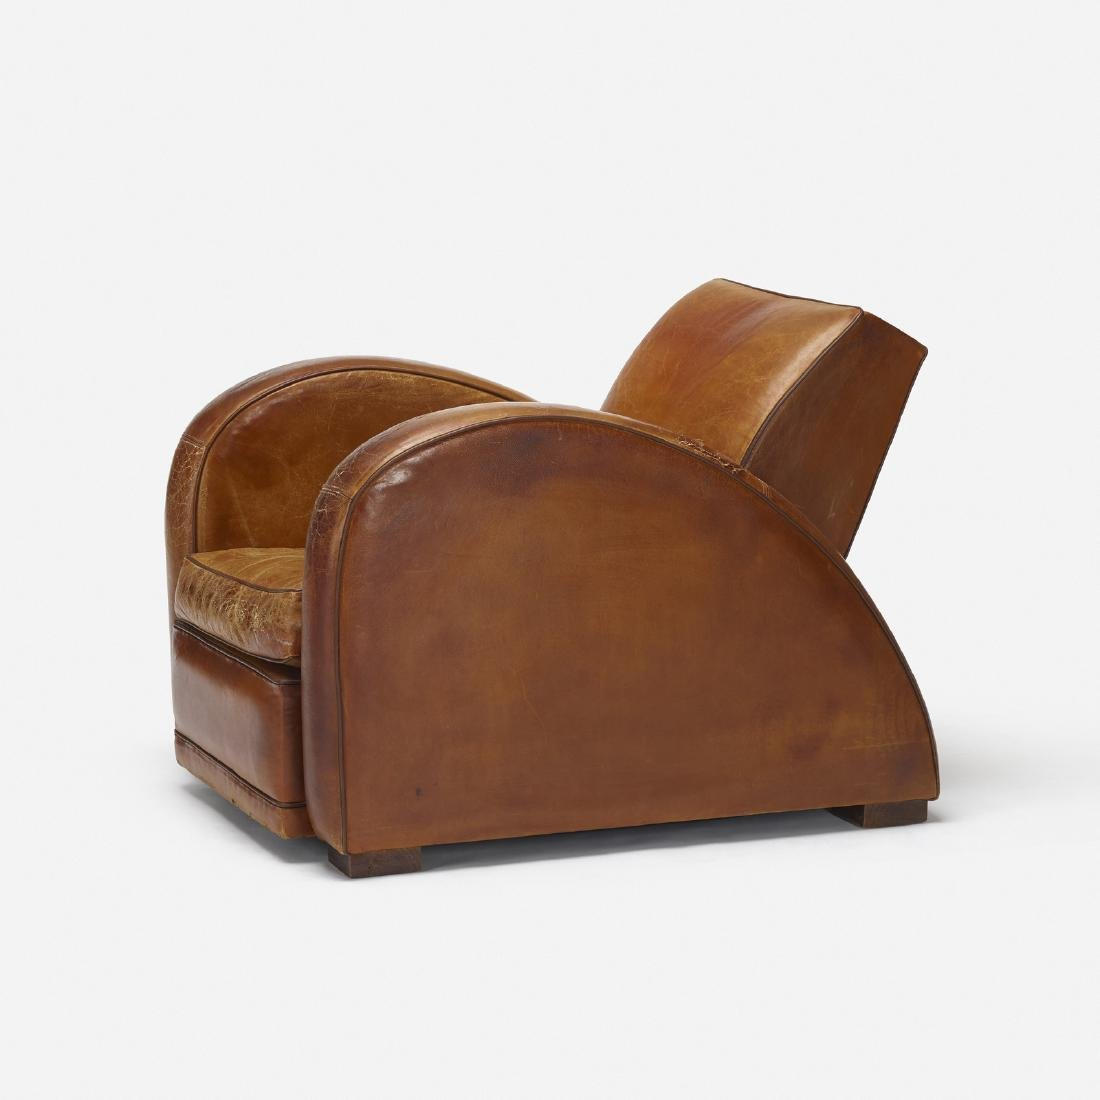 French, lounge chair